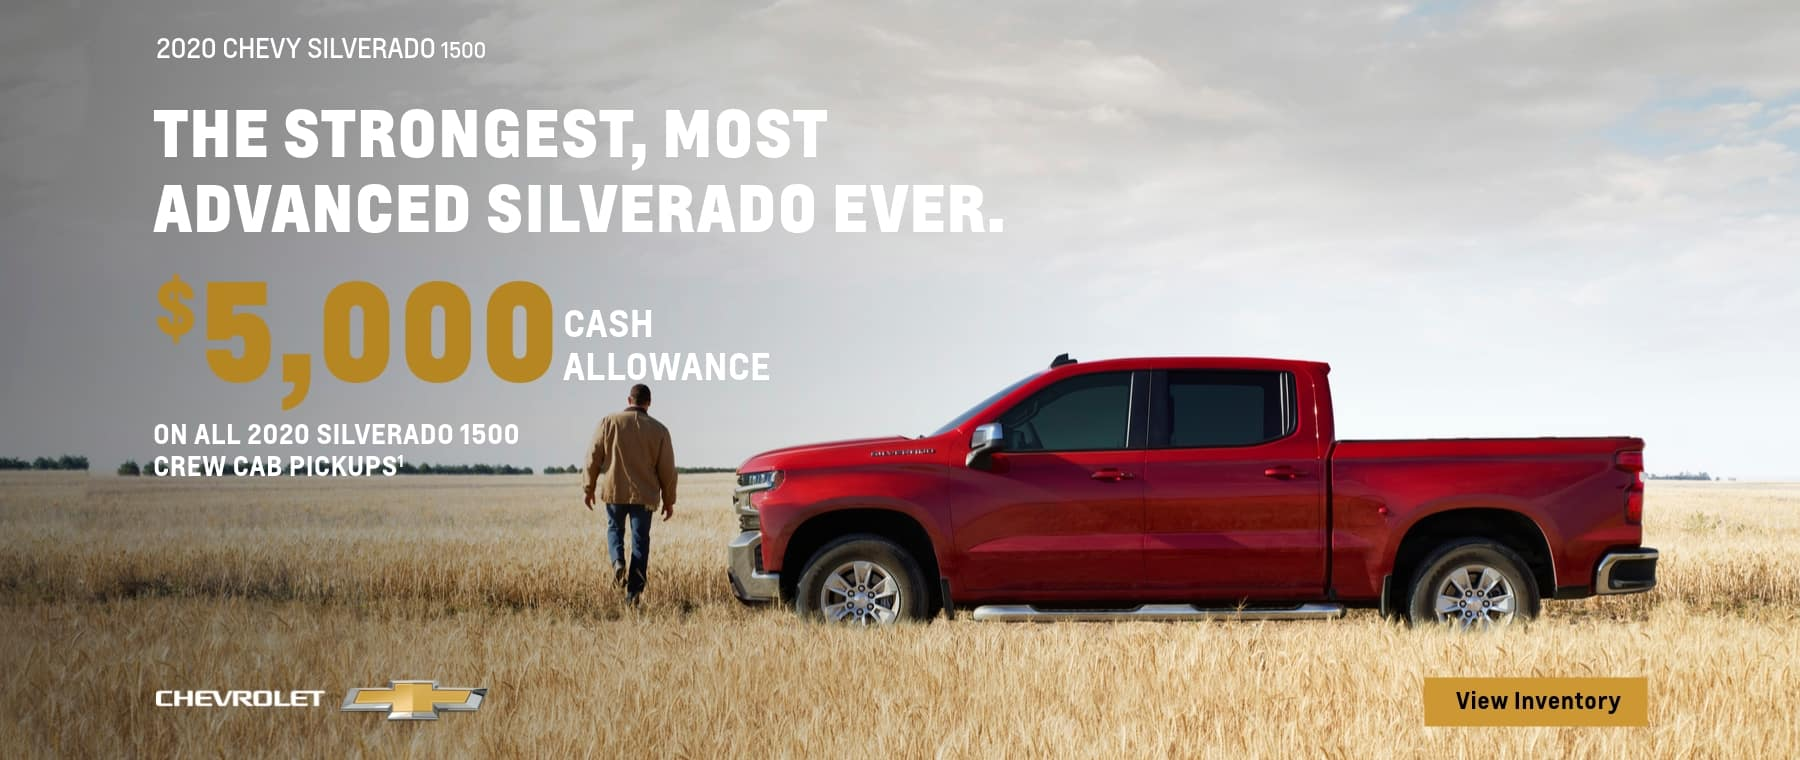 $5,000 Cash Allowance on all 2020 Silverado 1500 Crew Cab Pickups